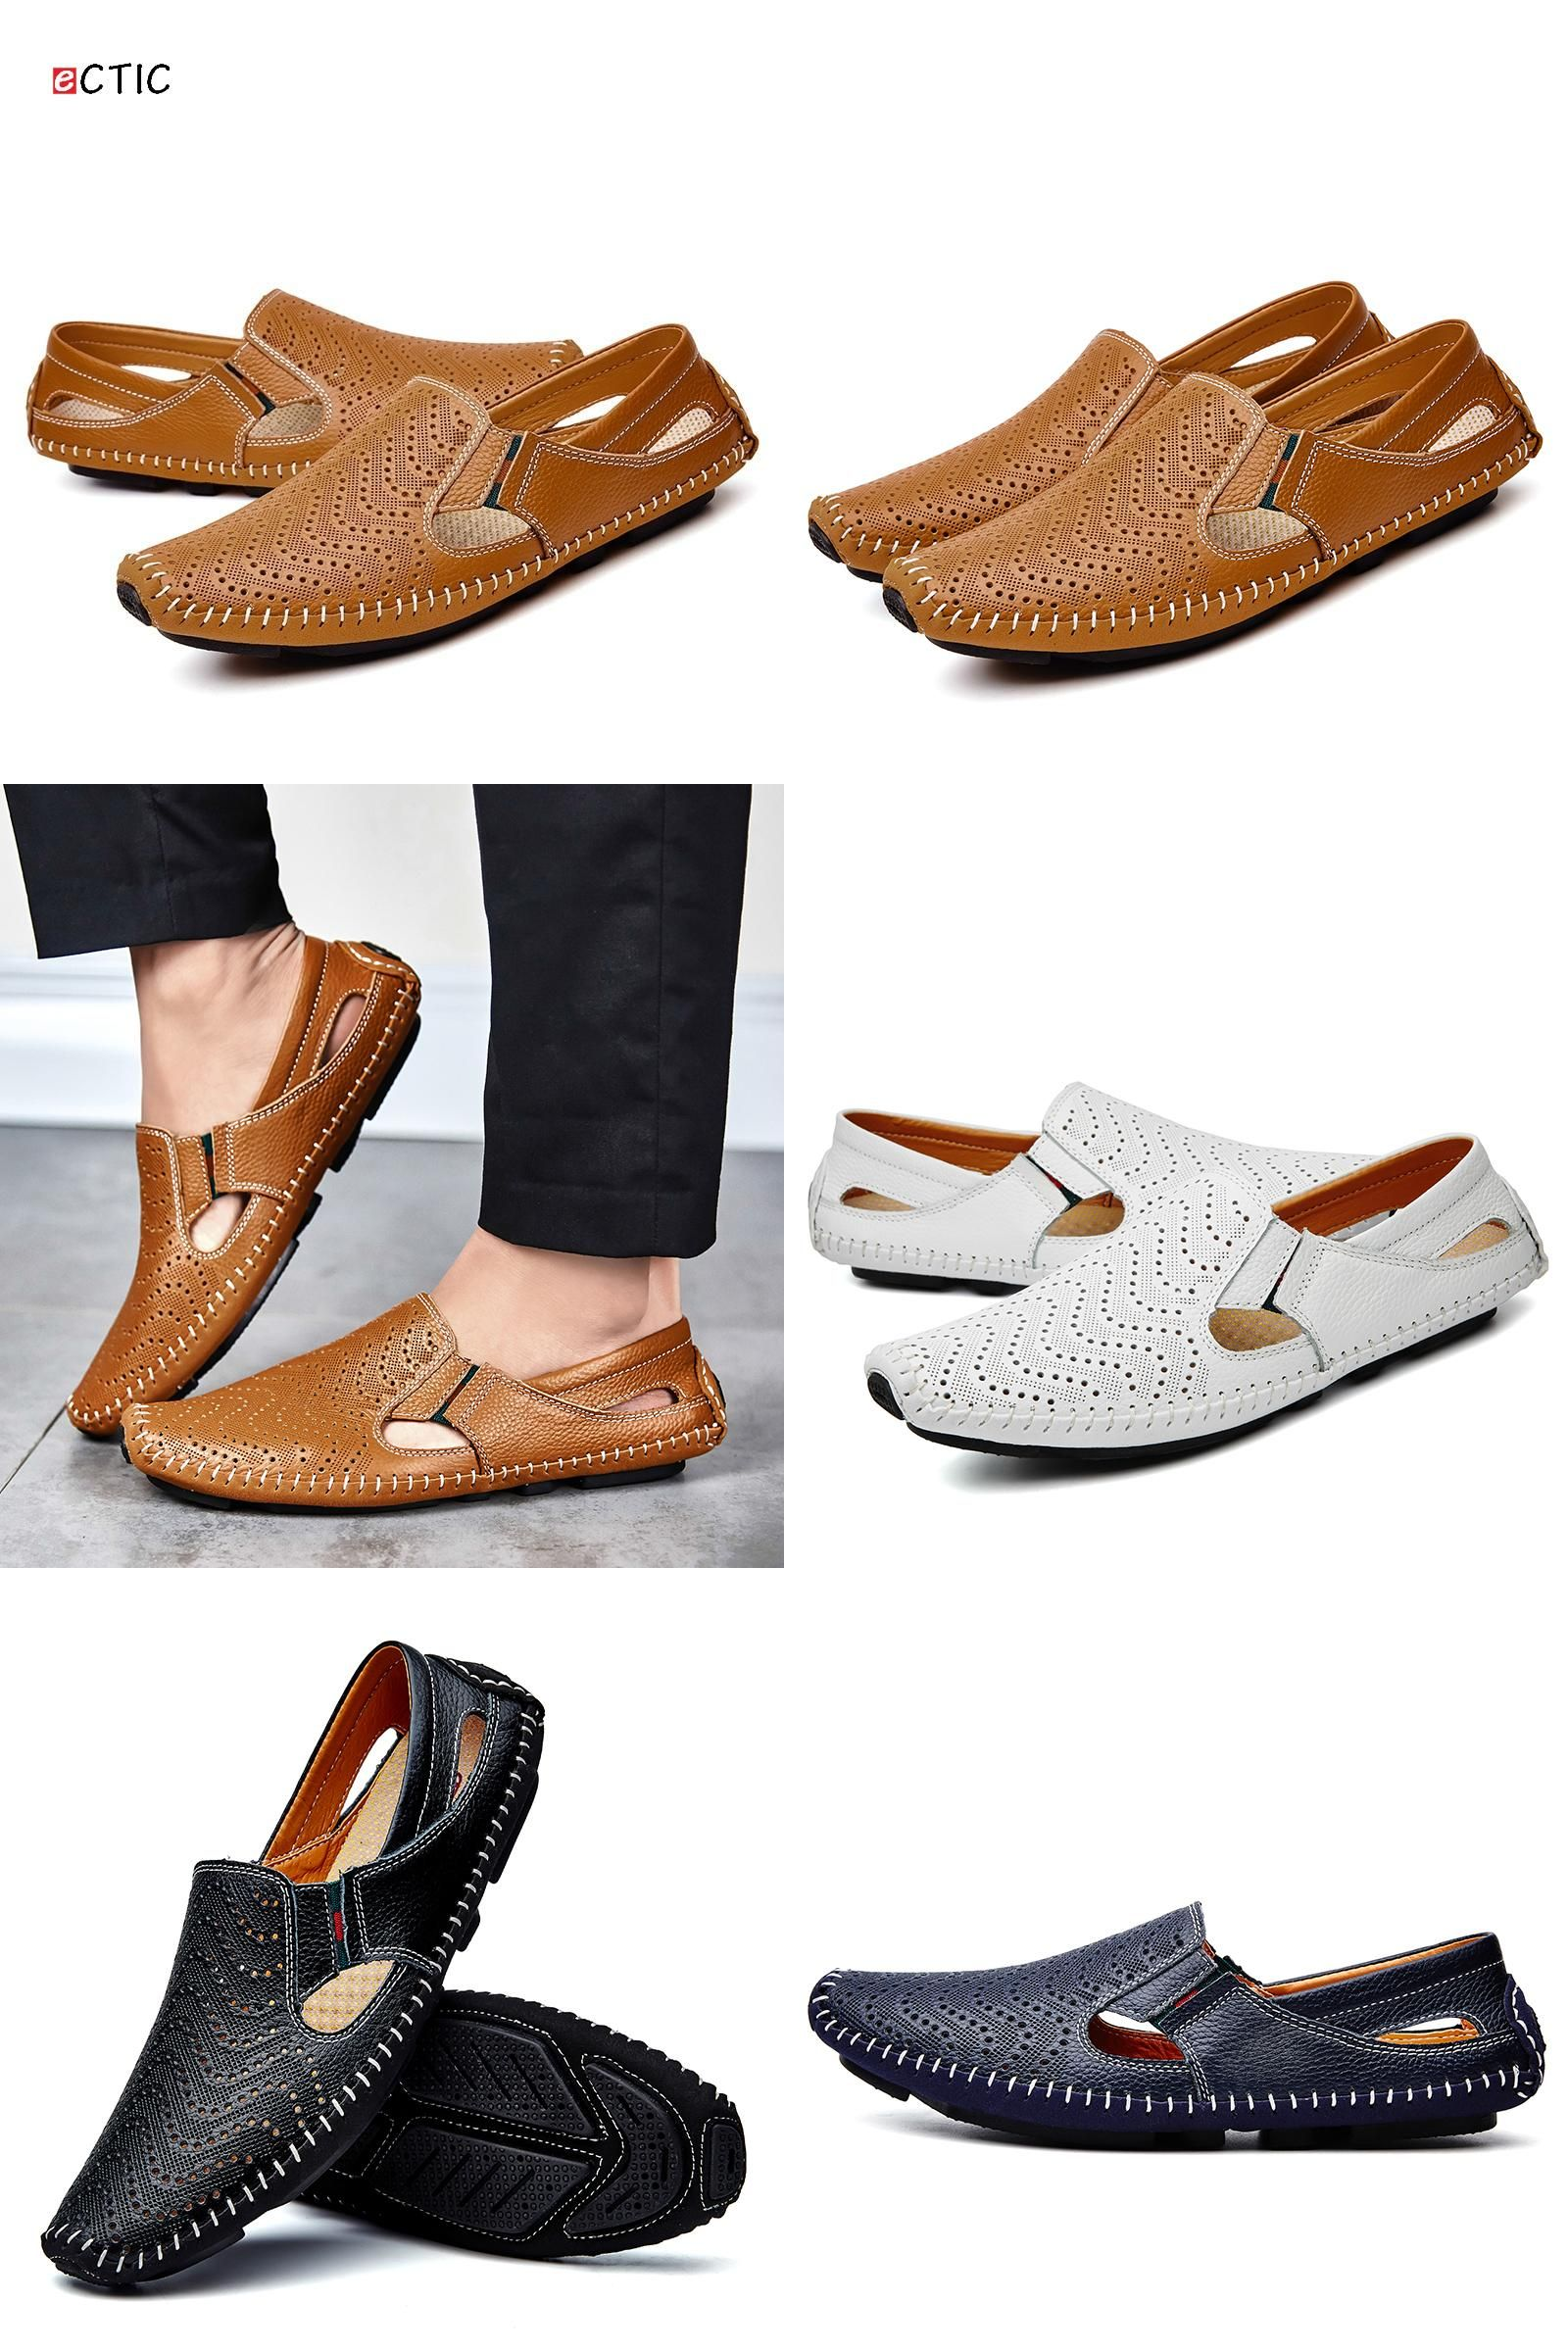 Men's Summer Casual Shoes Leather Slip-on Loafers Mesh Water Shoes Flat Slipper Plus Size 47 48